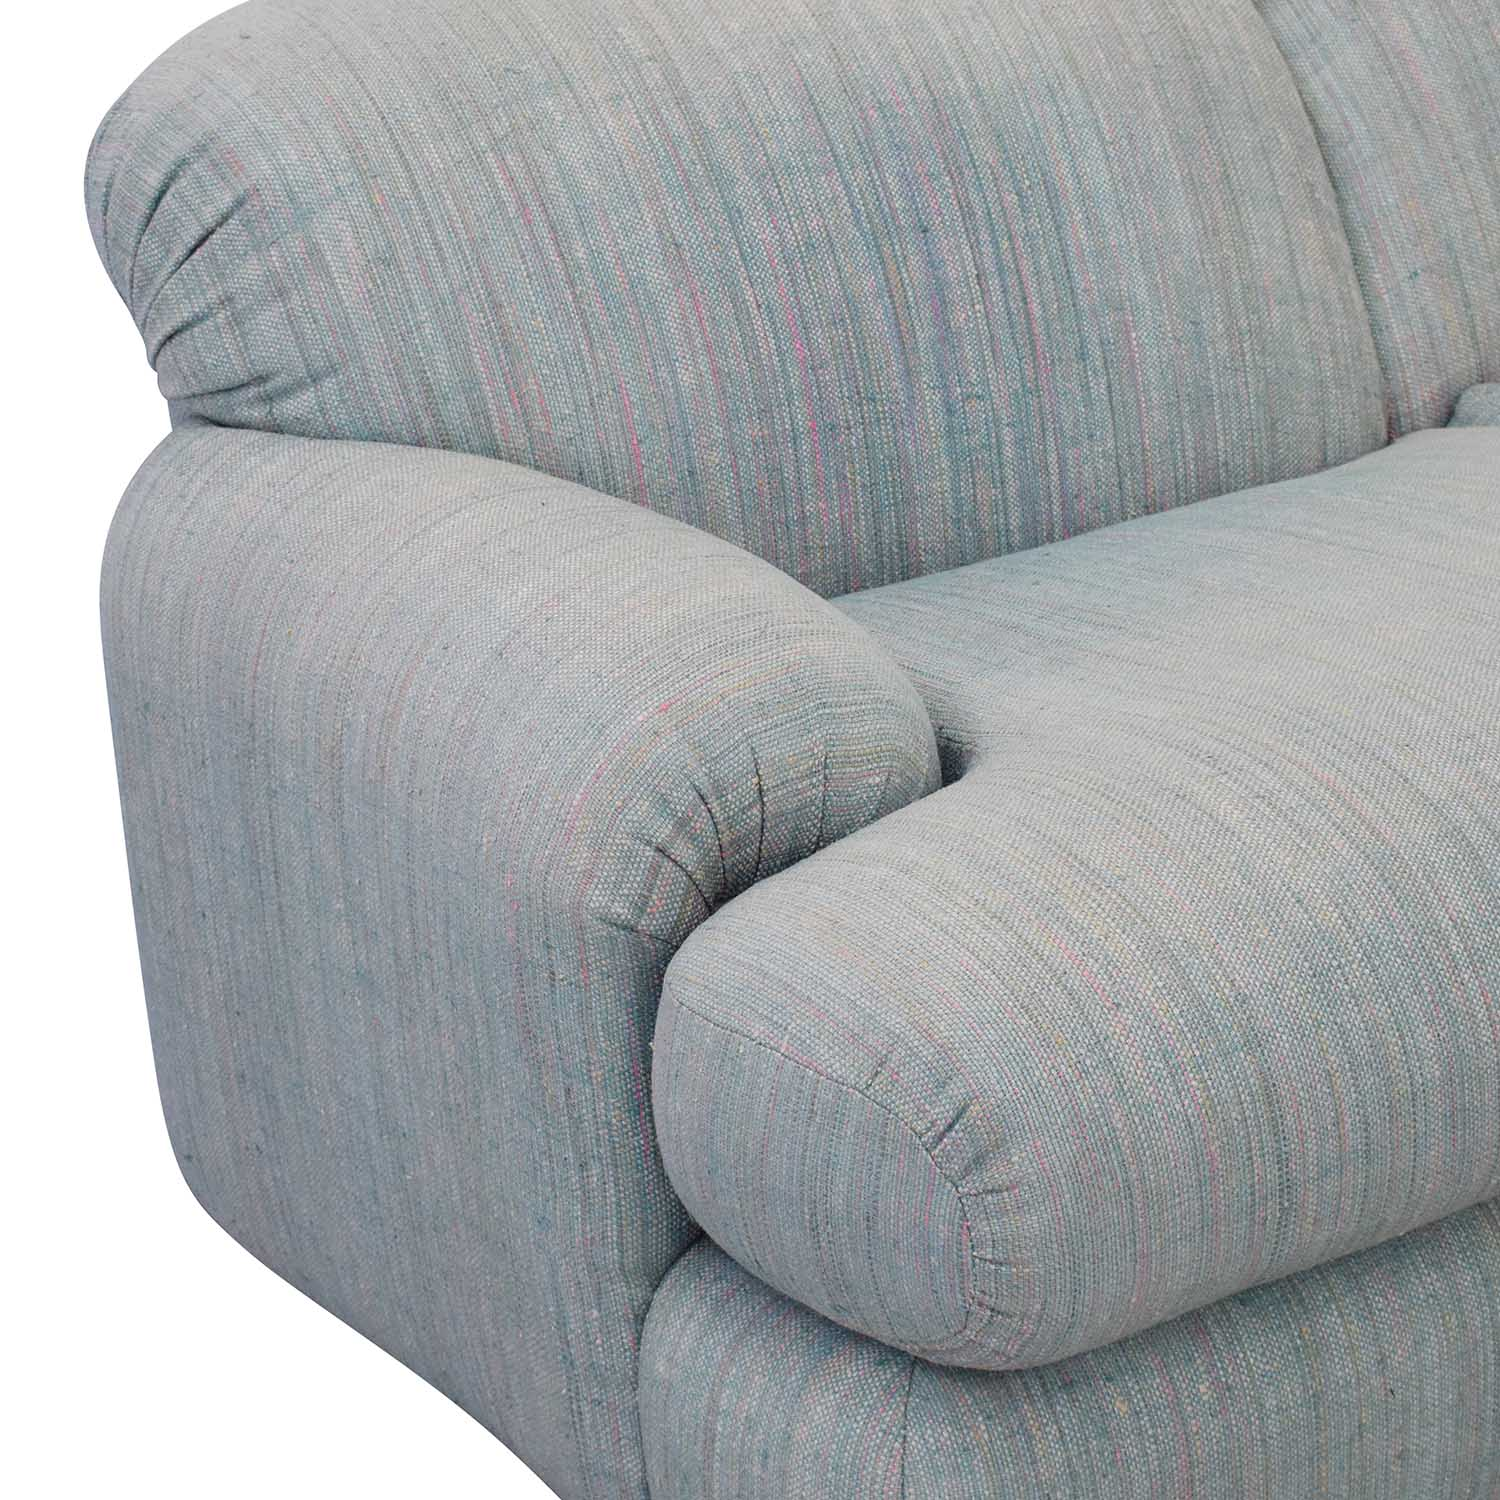 Preview Furniture Preview Furniture David L. James Curved Corner Sectional Sofa pa